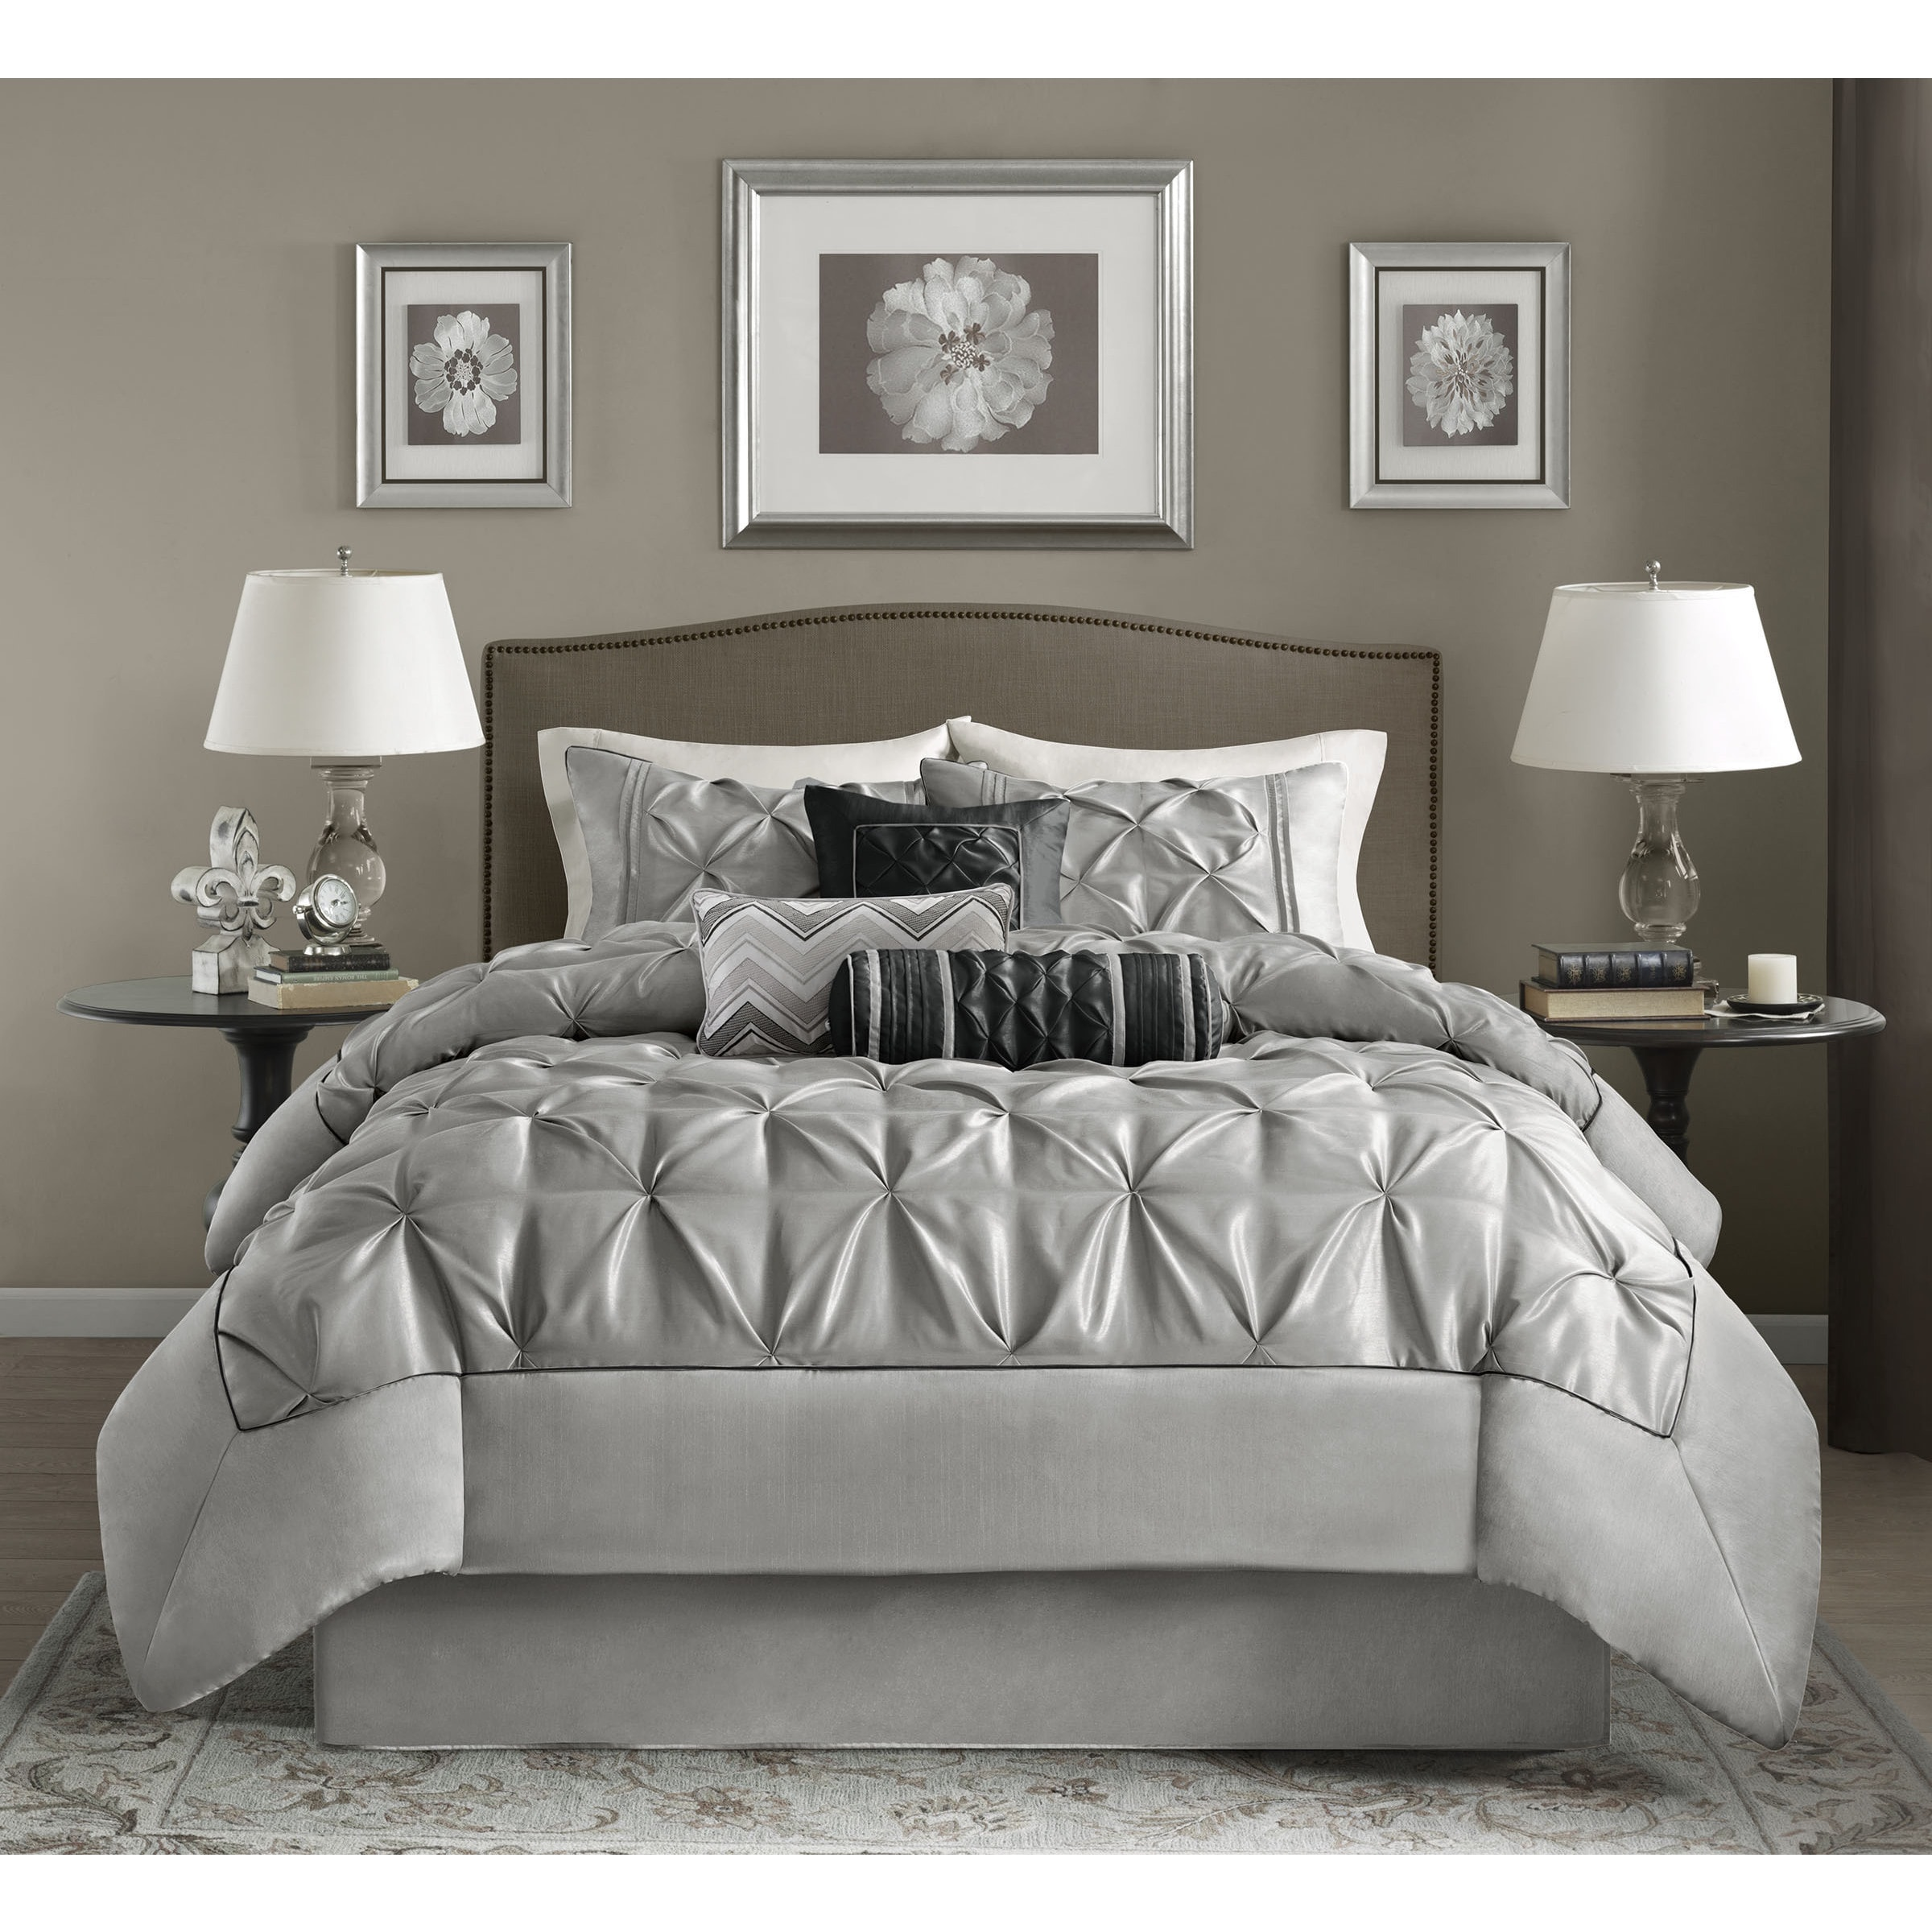 park essentials madison comforter and com aqua orissa complete bedding set product overstock bath cotton sheet bed